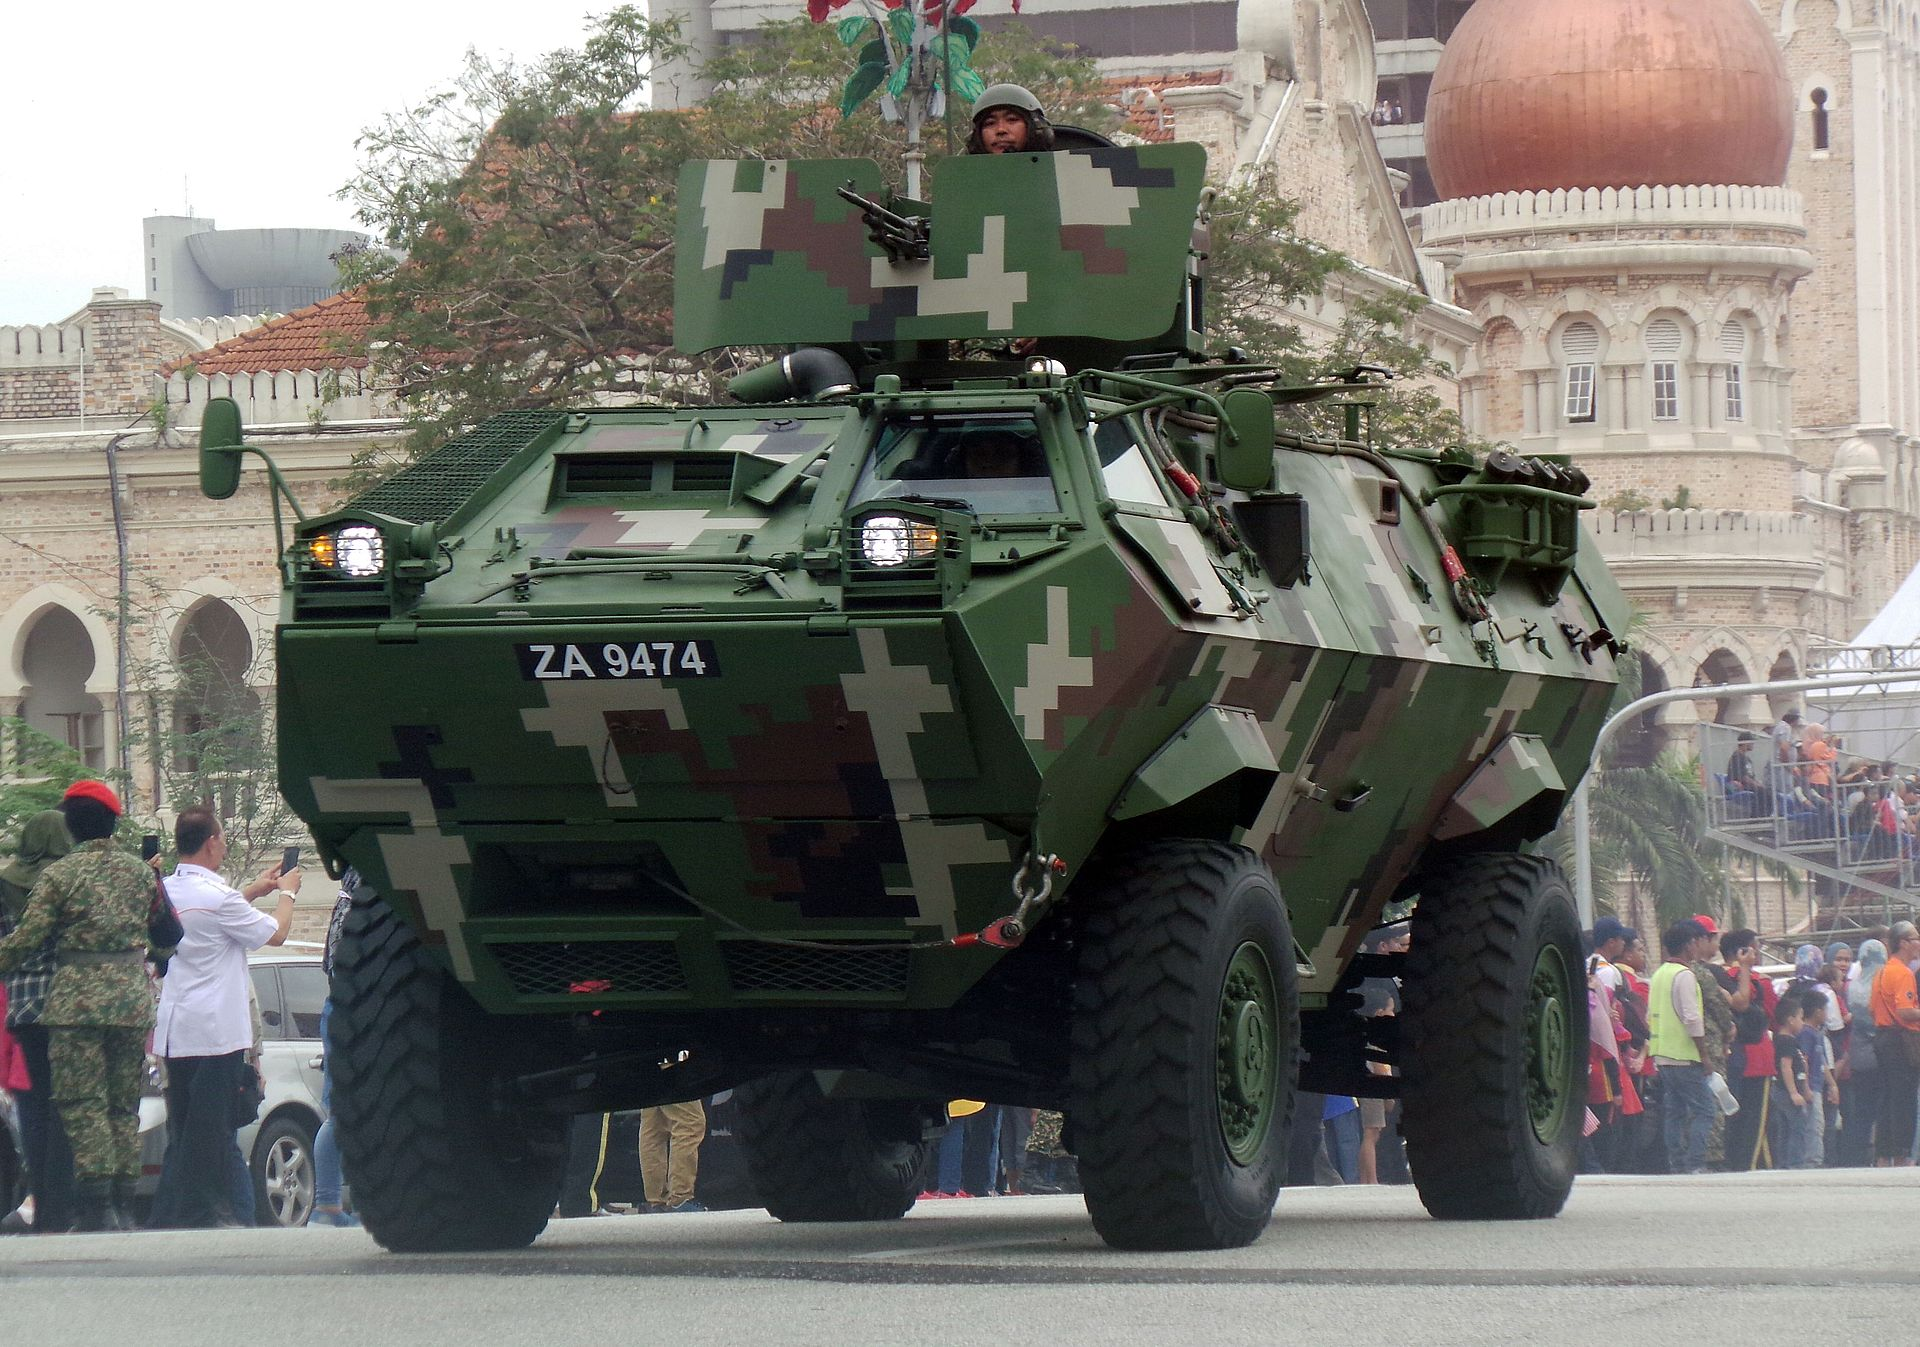 The N-pattern Condor, ZA 9474 which took part in the recent Malaysia's Independence Day parade | Malaysian Defence